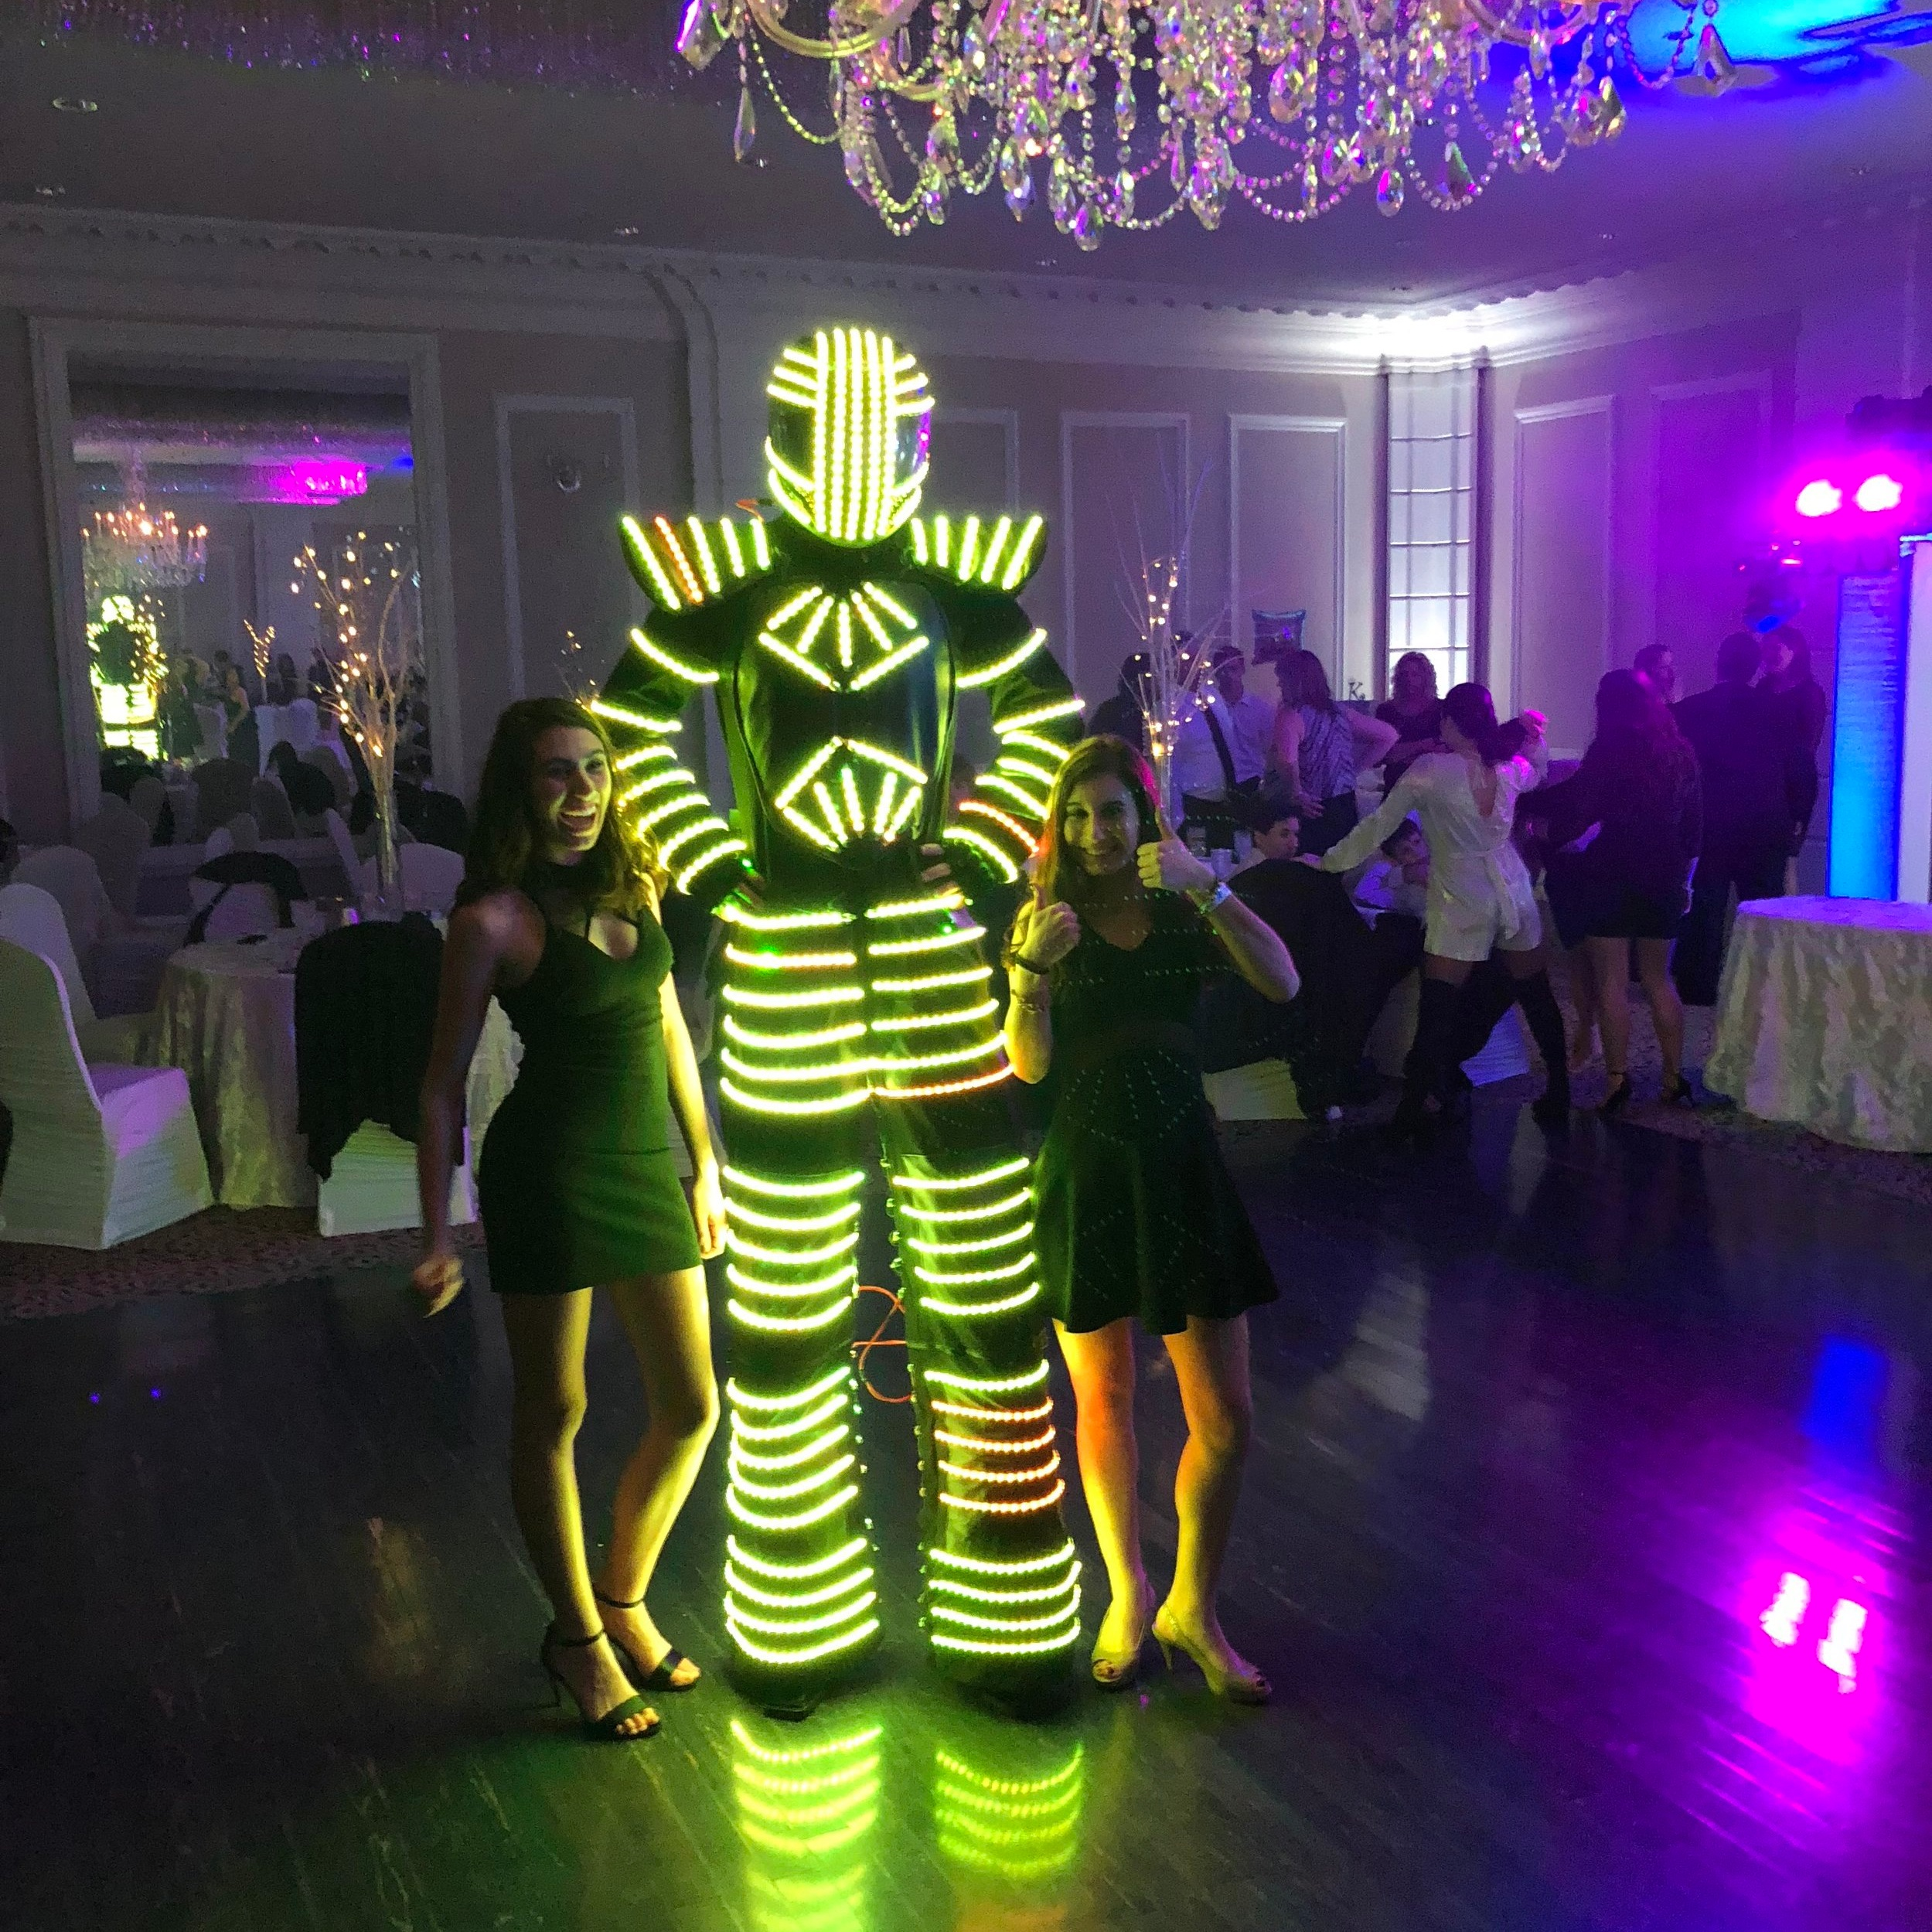 LED Dancing Robot $495 - Add in our LED Dancing Robot. Coming in at over 7ft tall, the robot has his own built in light show and will entertain your guests for an hour show!